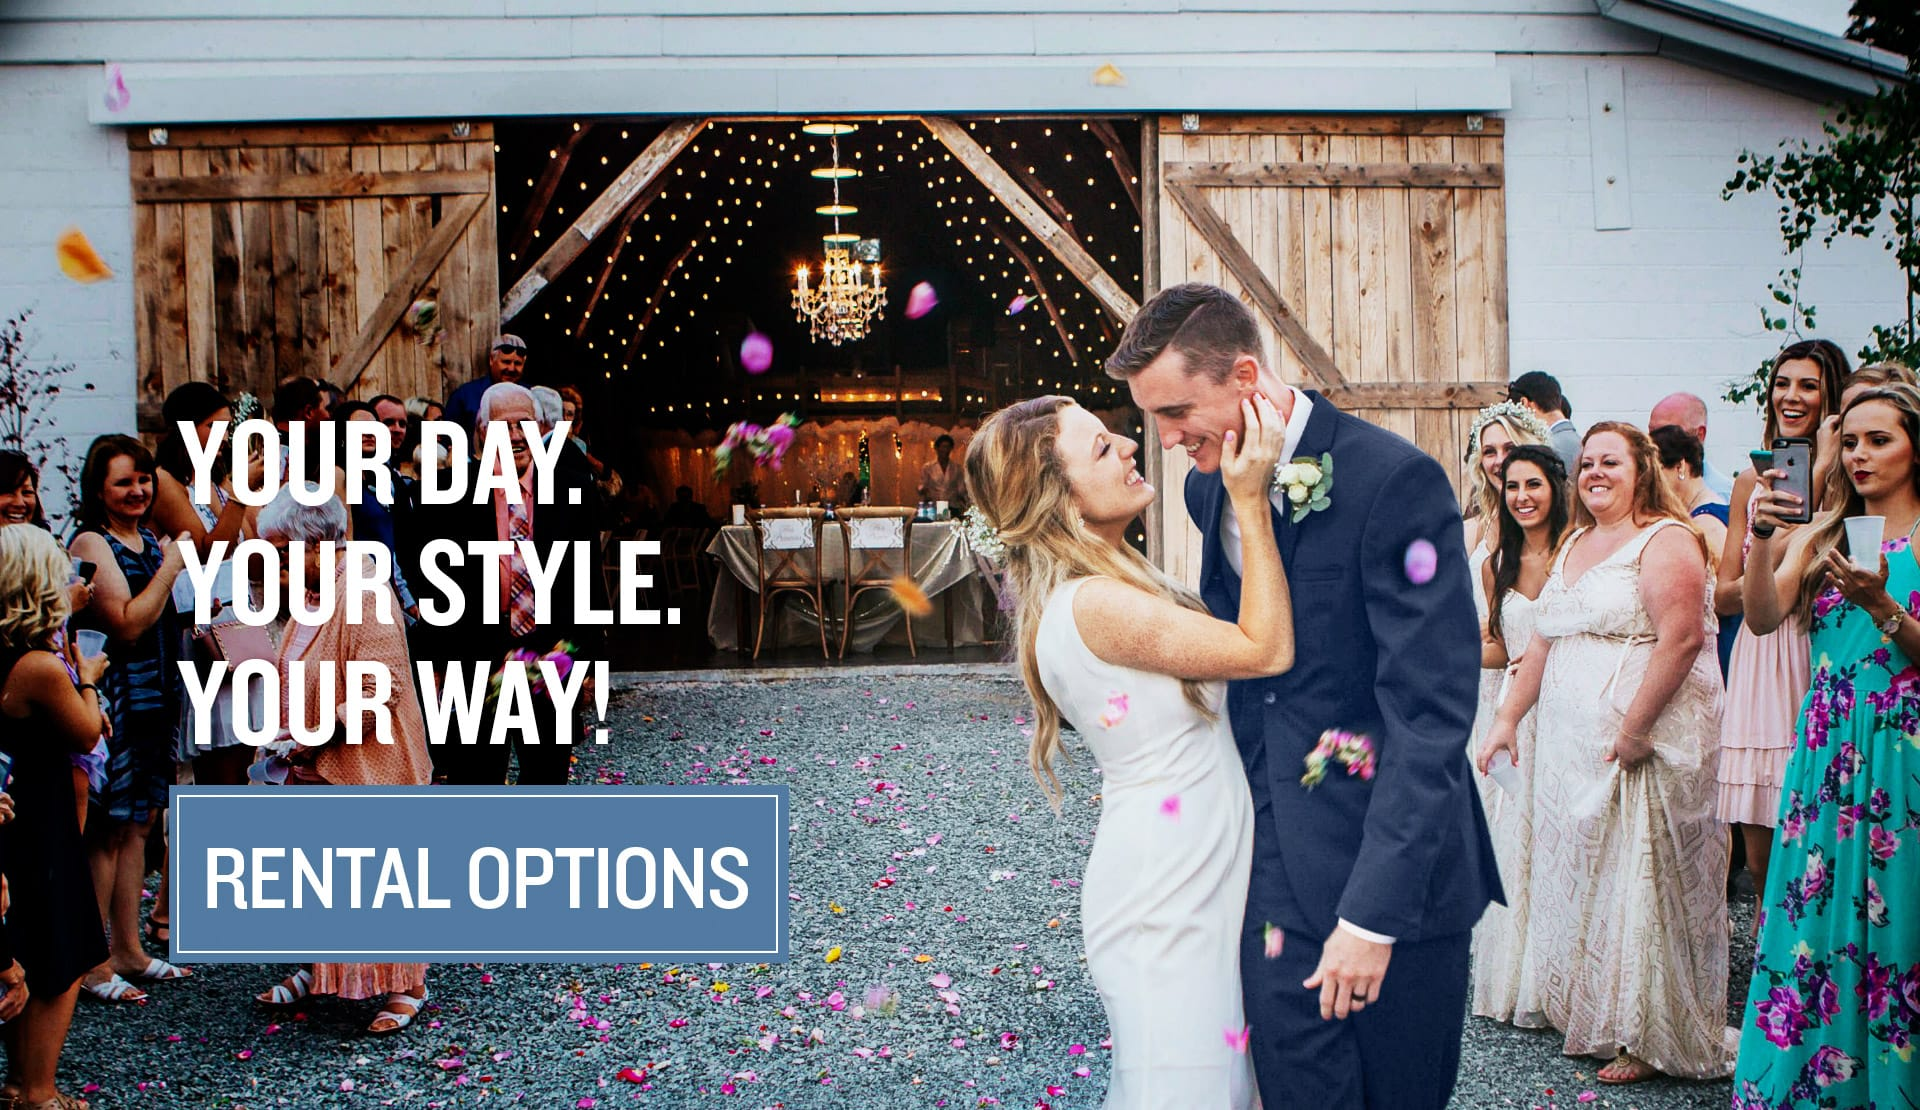 Choose a personalized tuxedo rental option best for you.